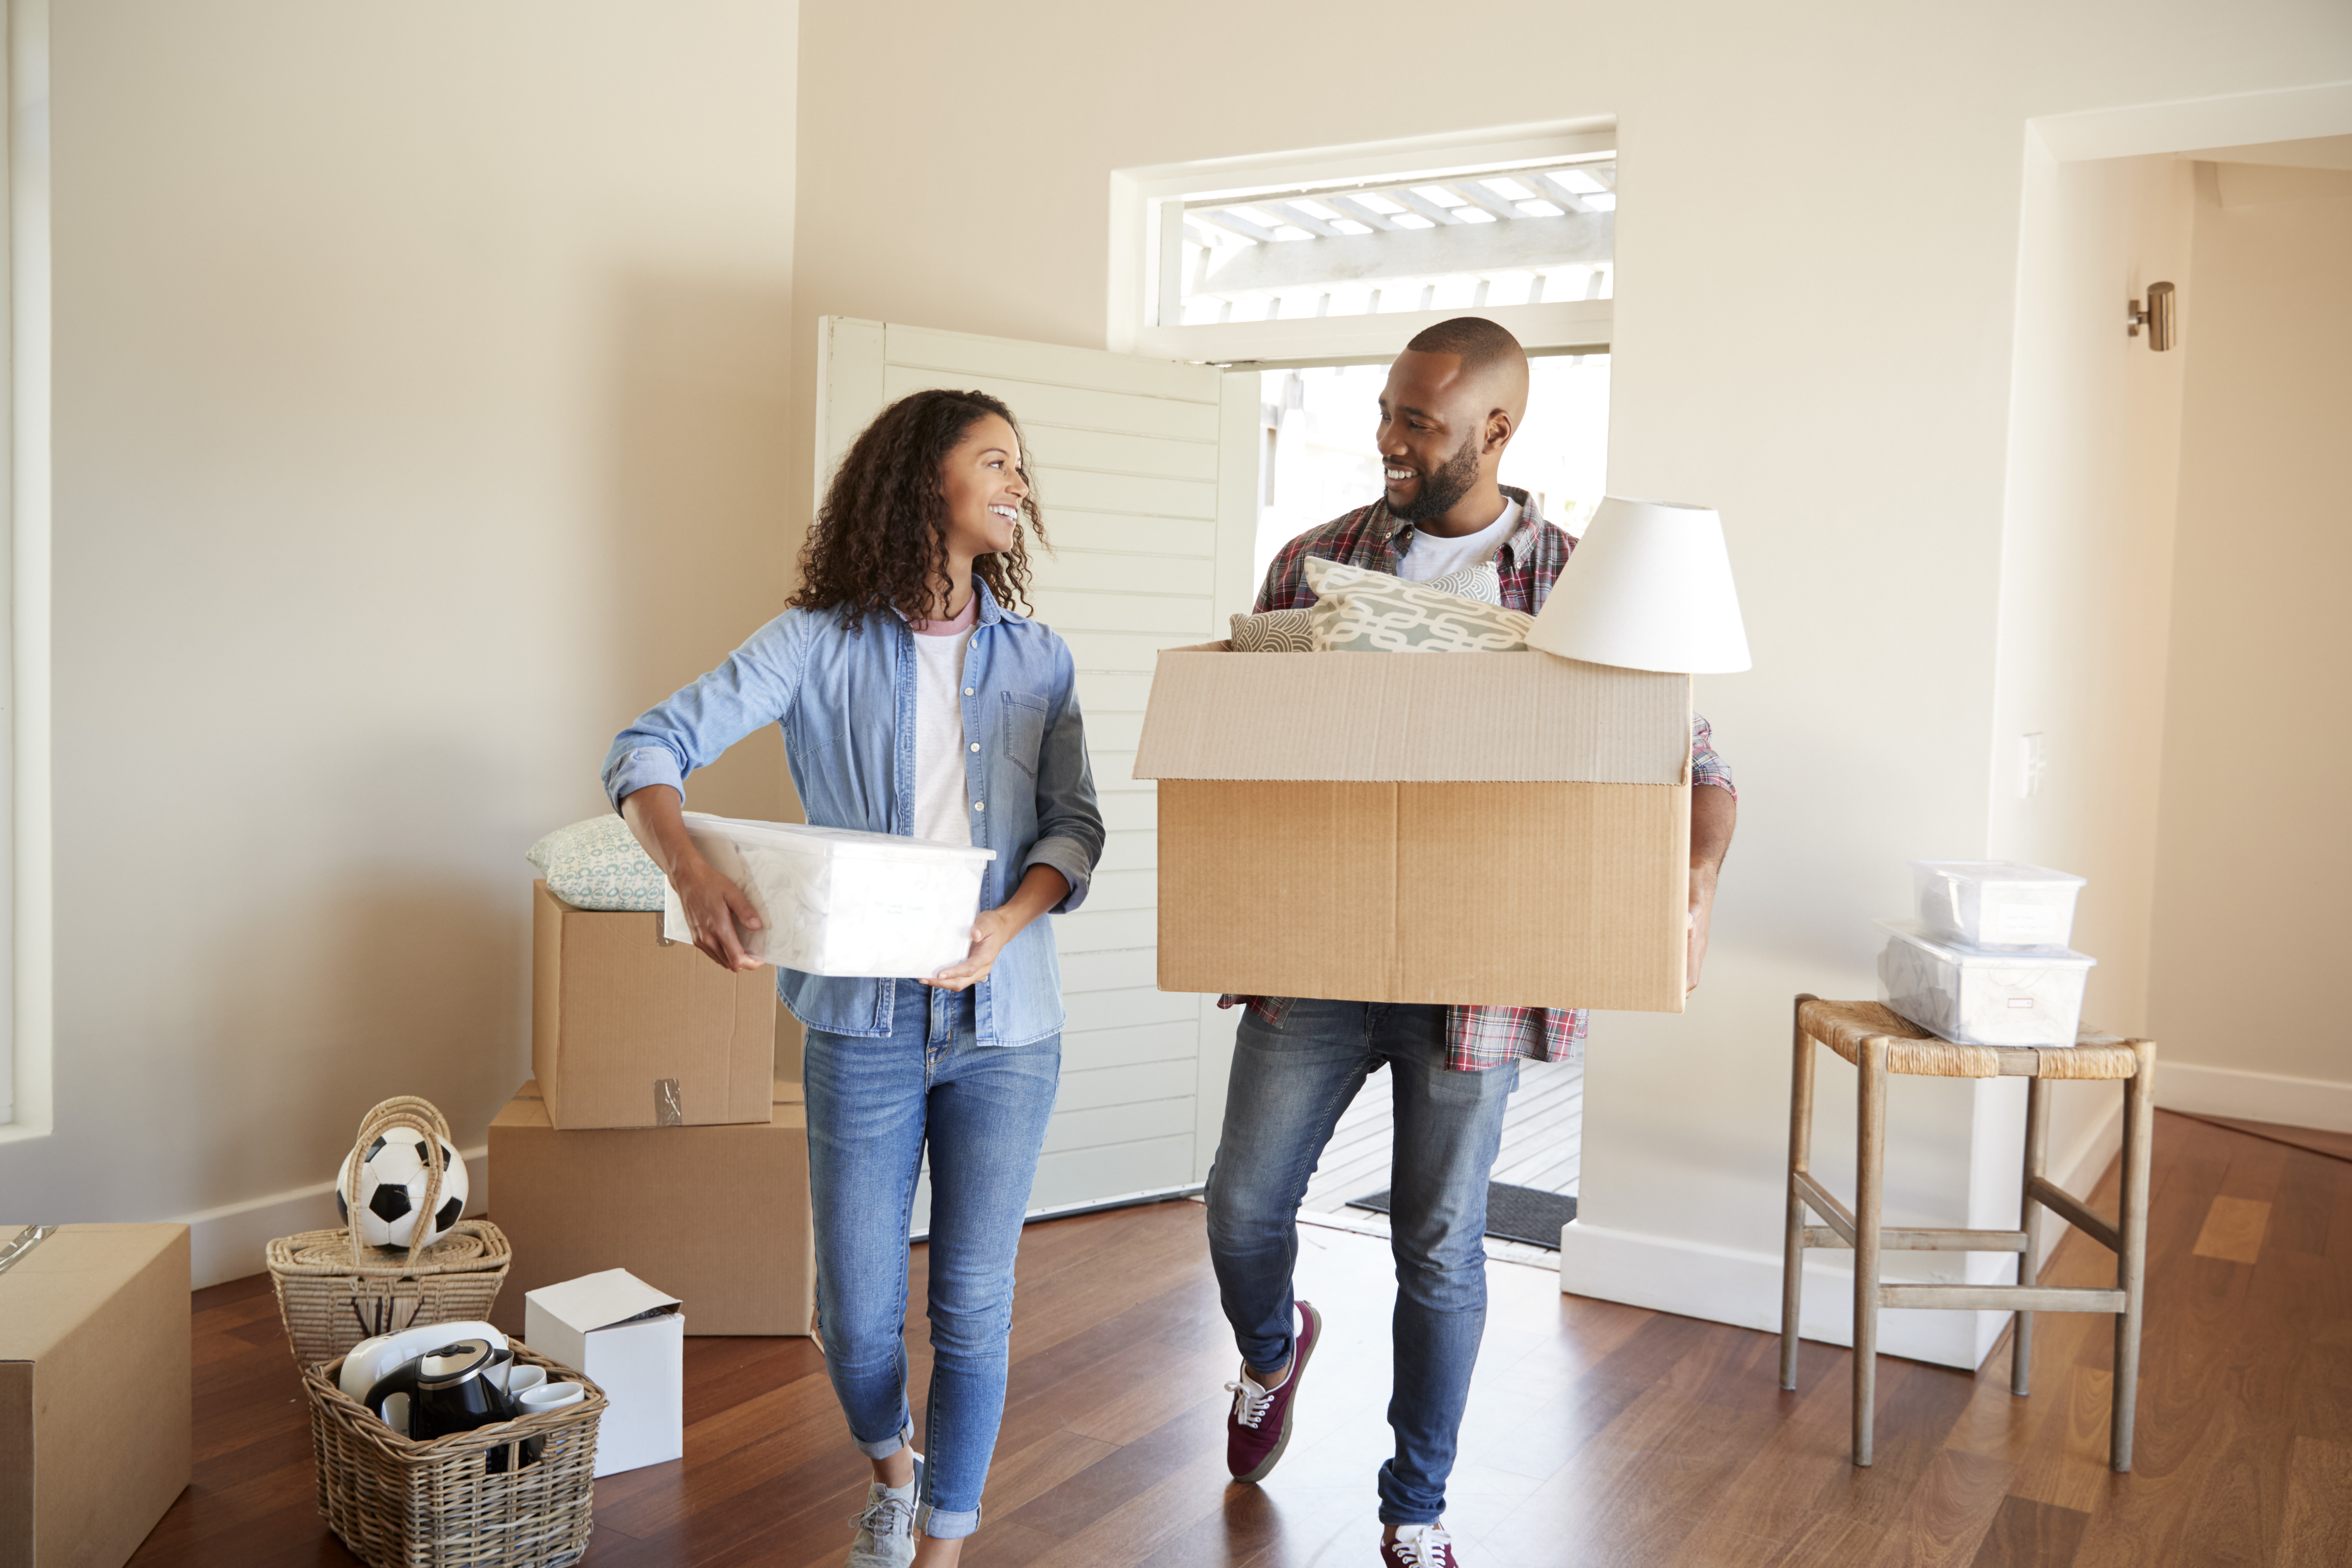 5 Helpful Tips to Make Moving in Together Painless